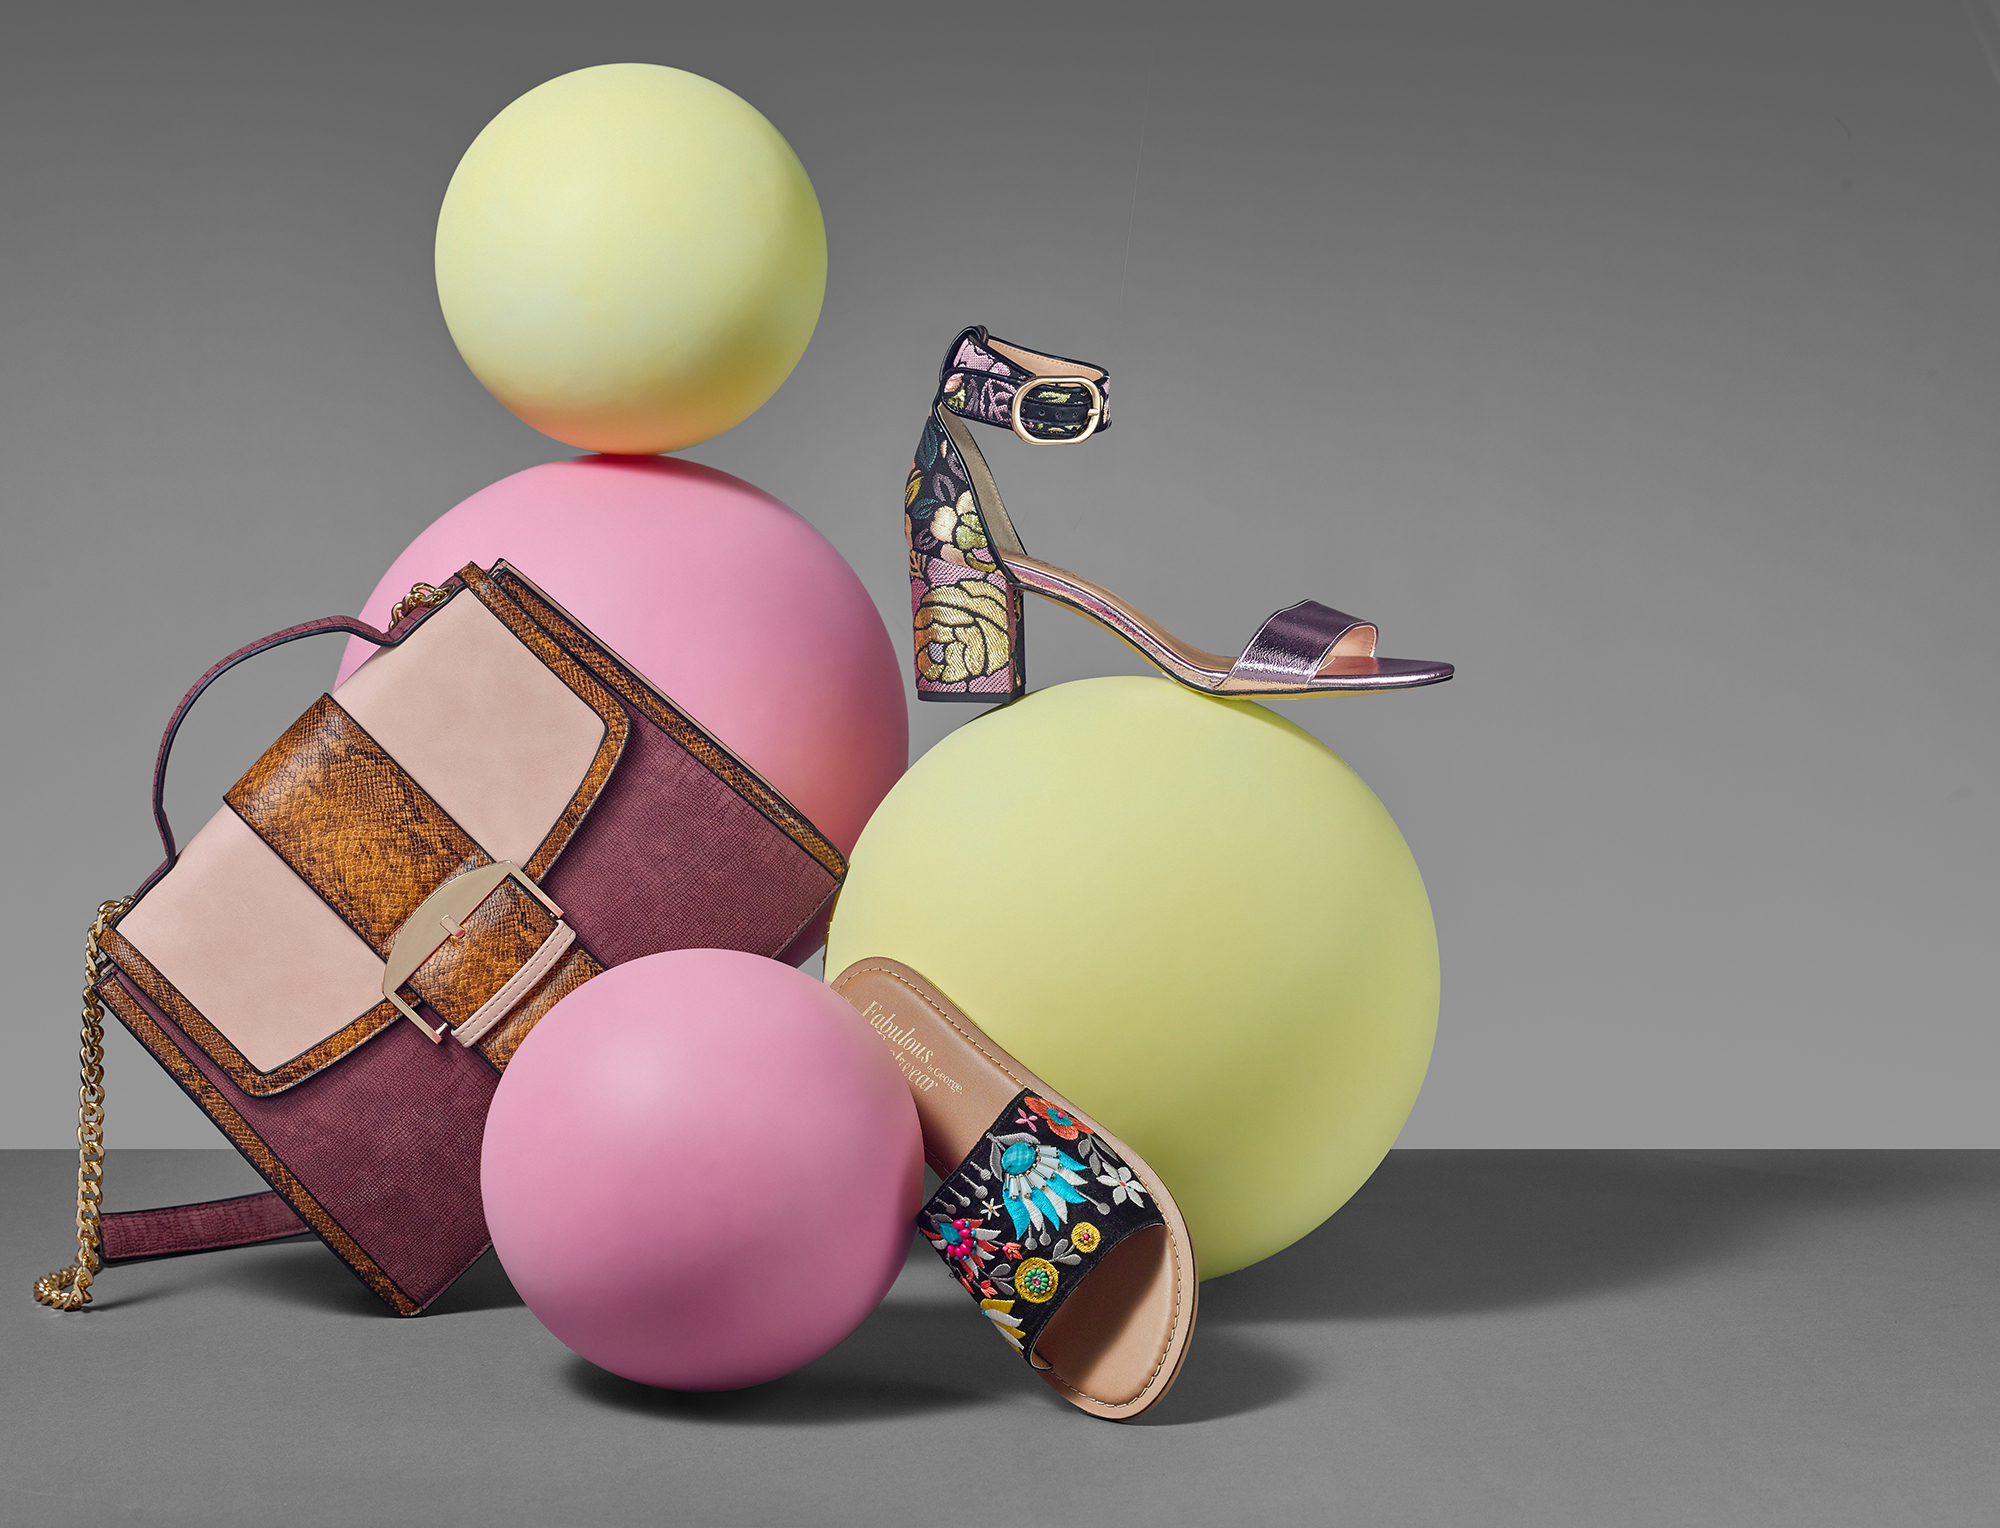 Fashion still life, Women's accessories, hand bags and shoes on spherical coloured shapes. Creative product and packshot photography for commercial advertising campaigns in London.